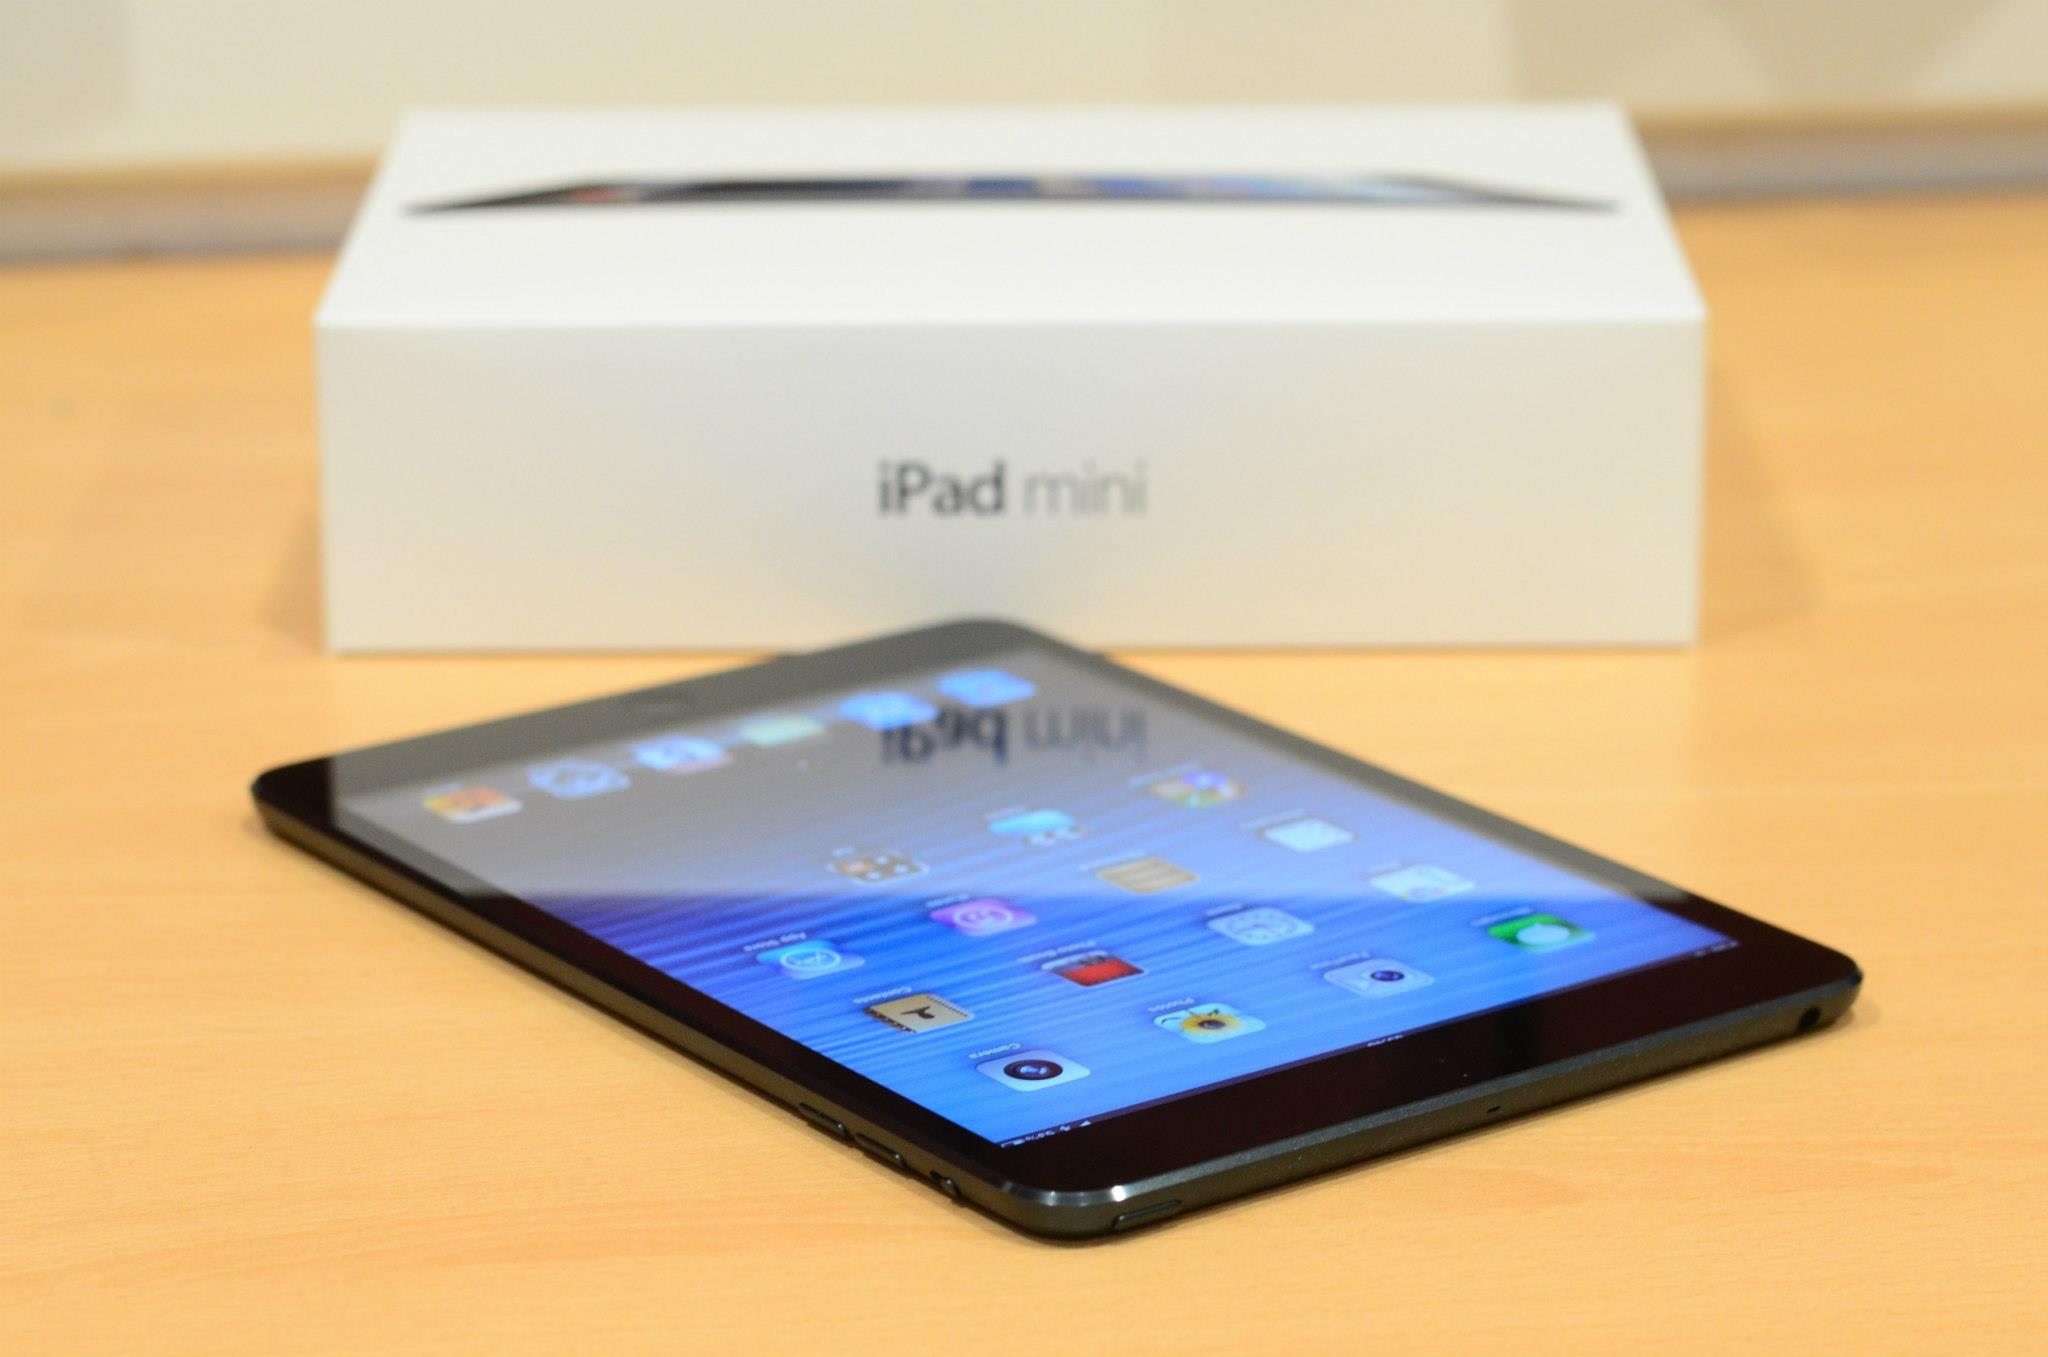 ipad-mini-cu-16gb-3g-wifi-1